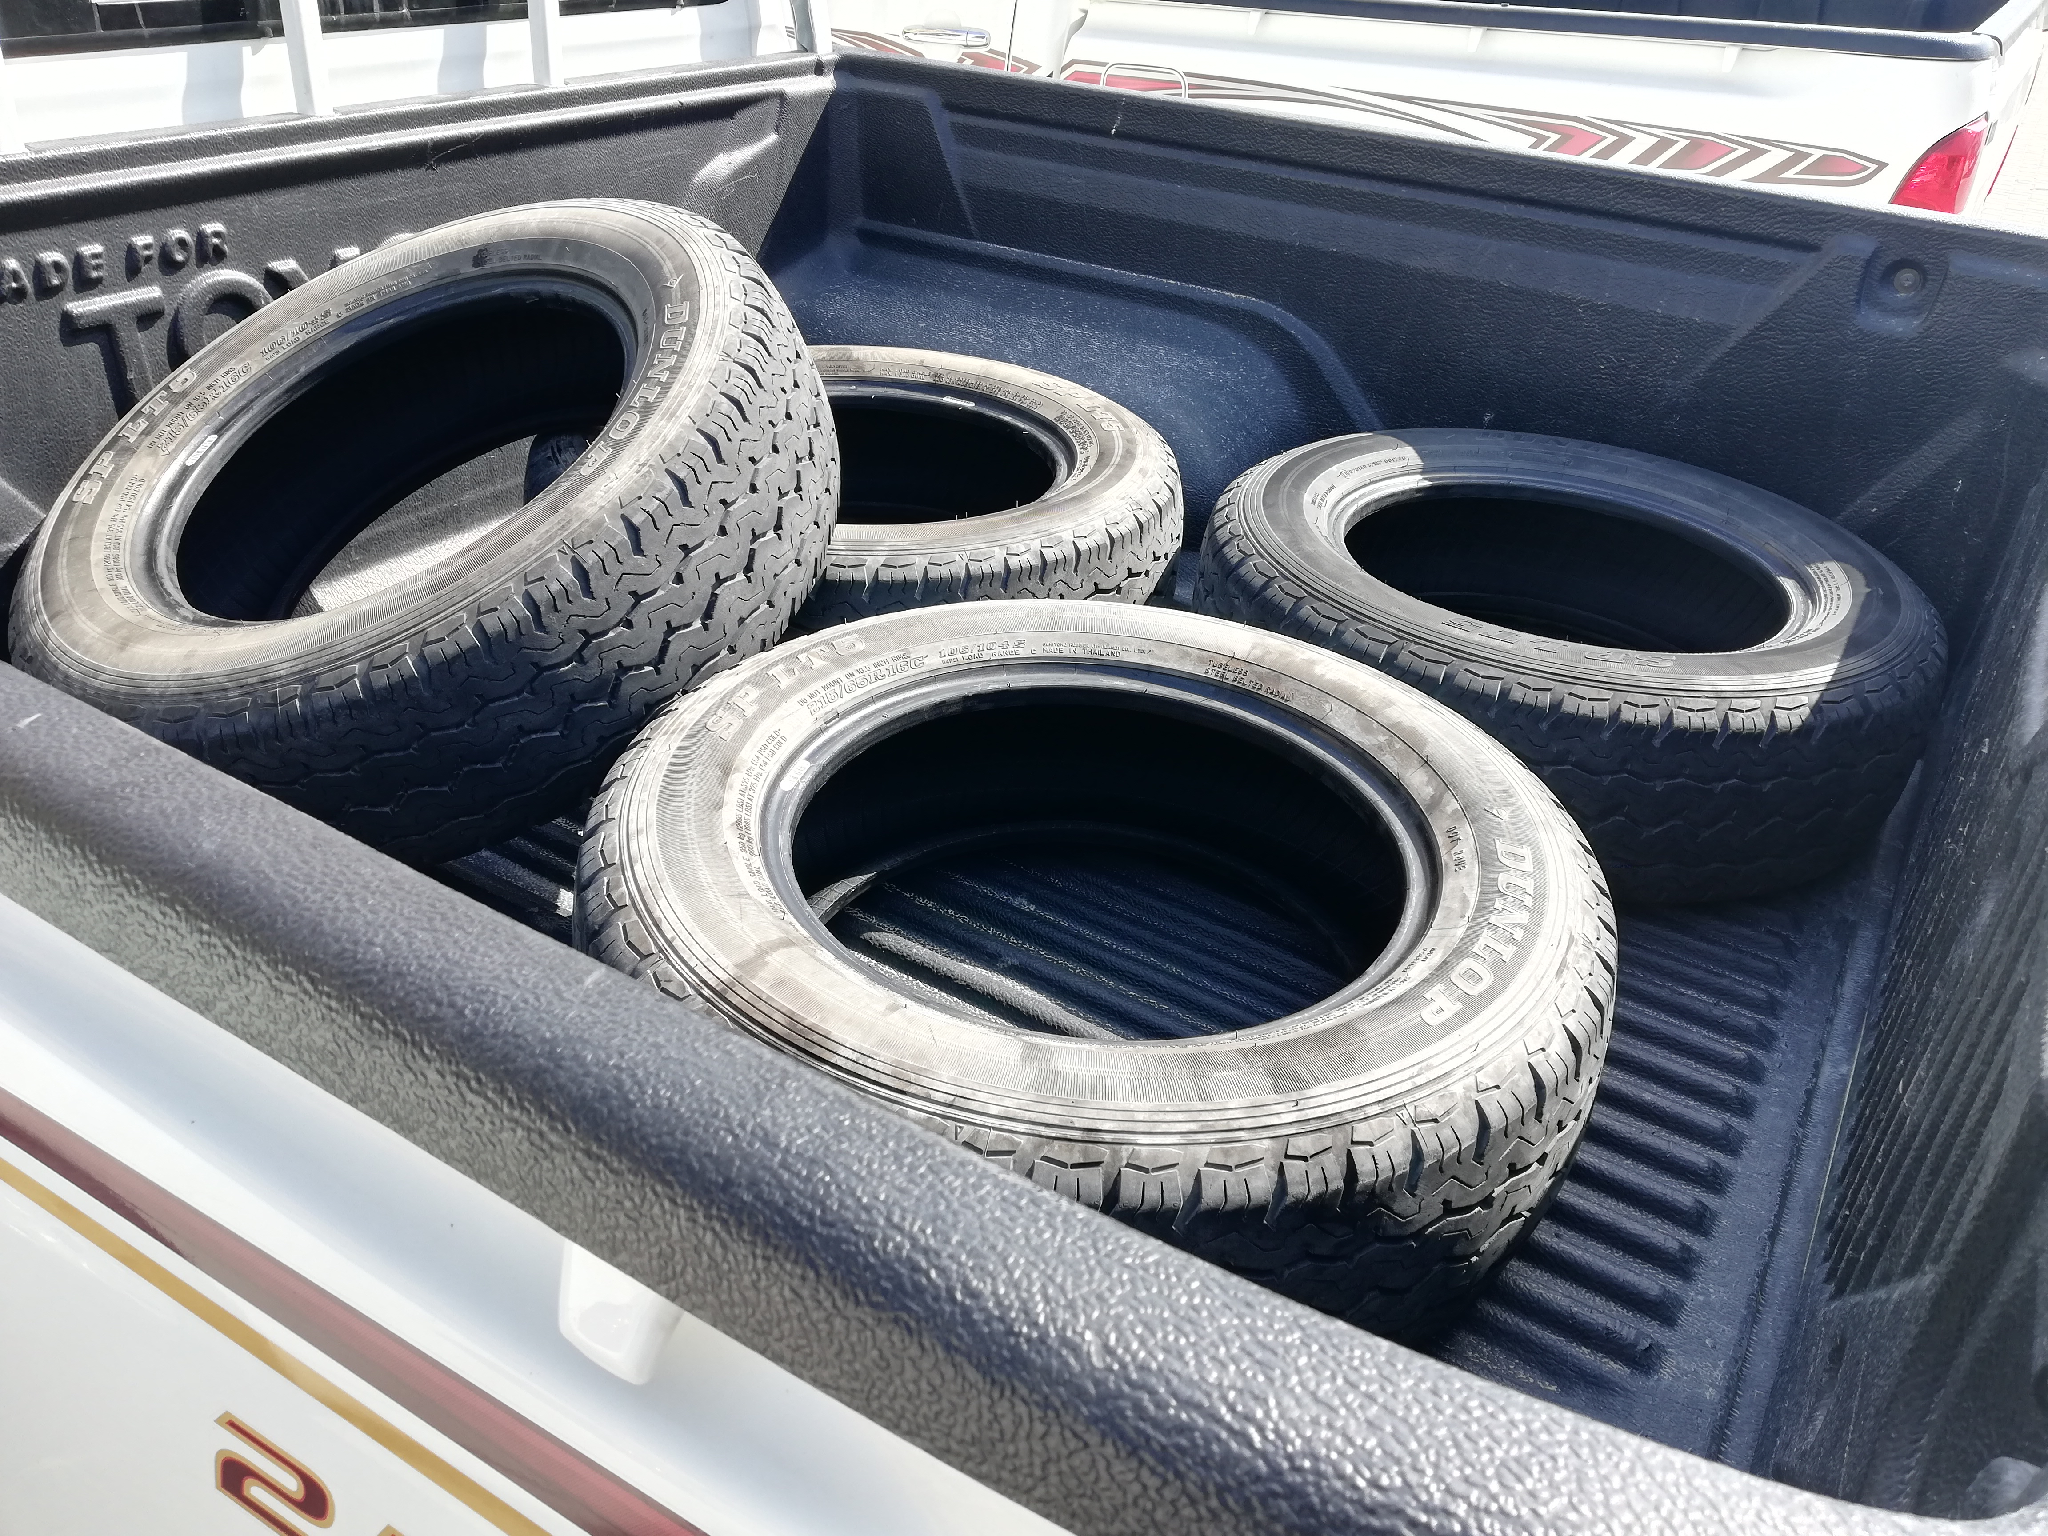 Used 4 Toyota hilux tyres.